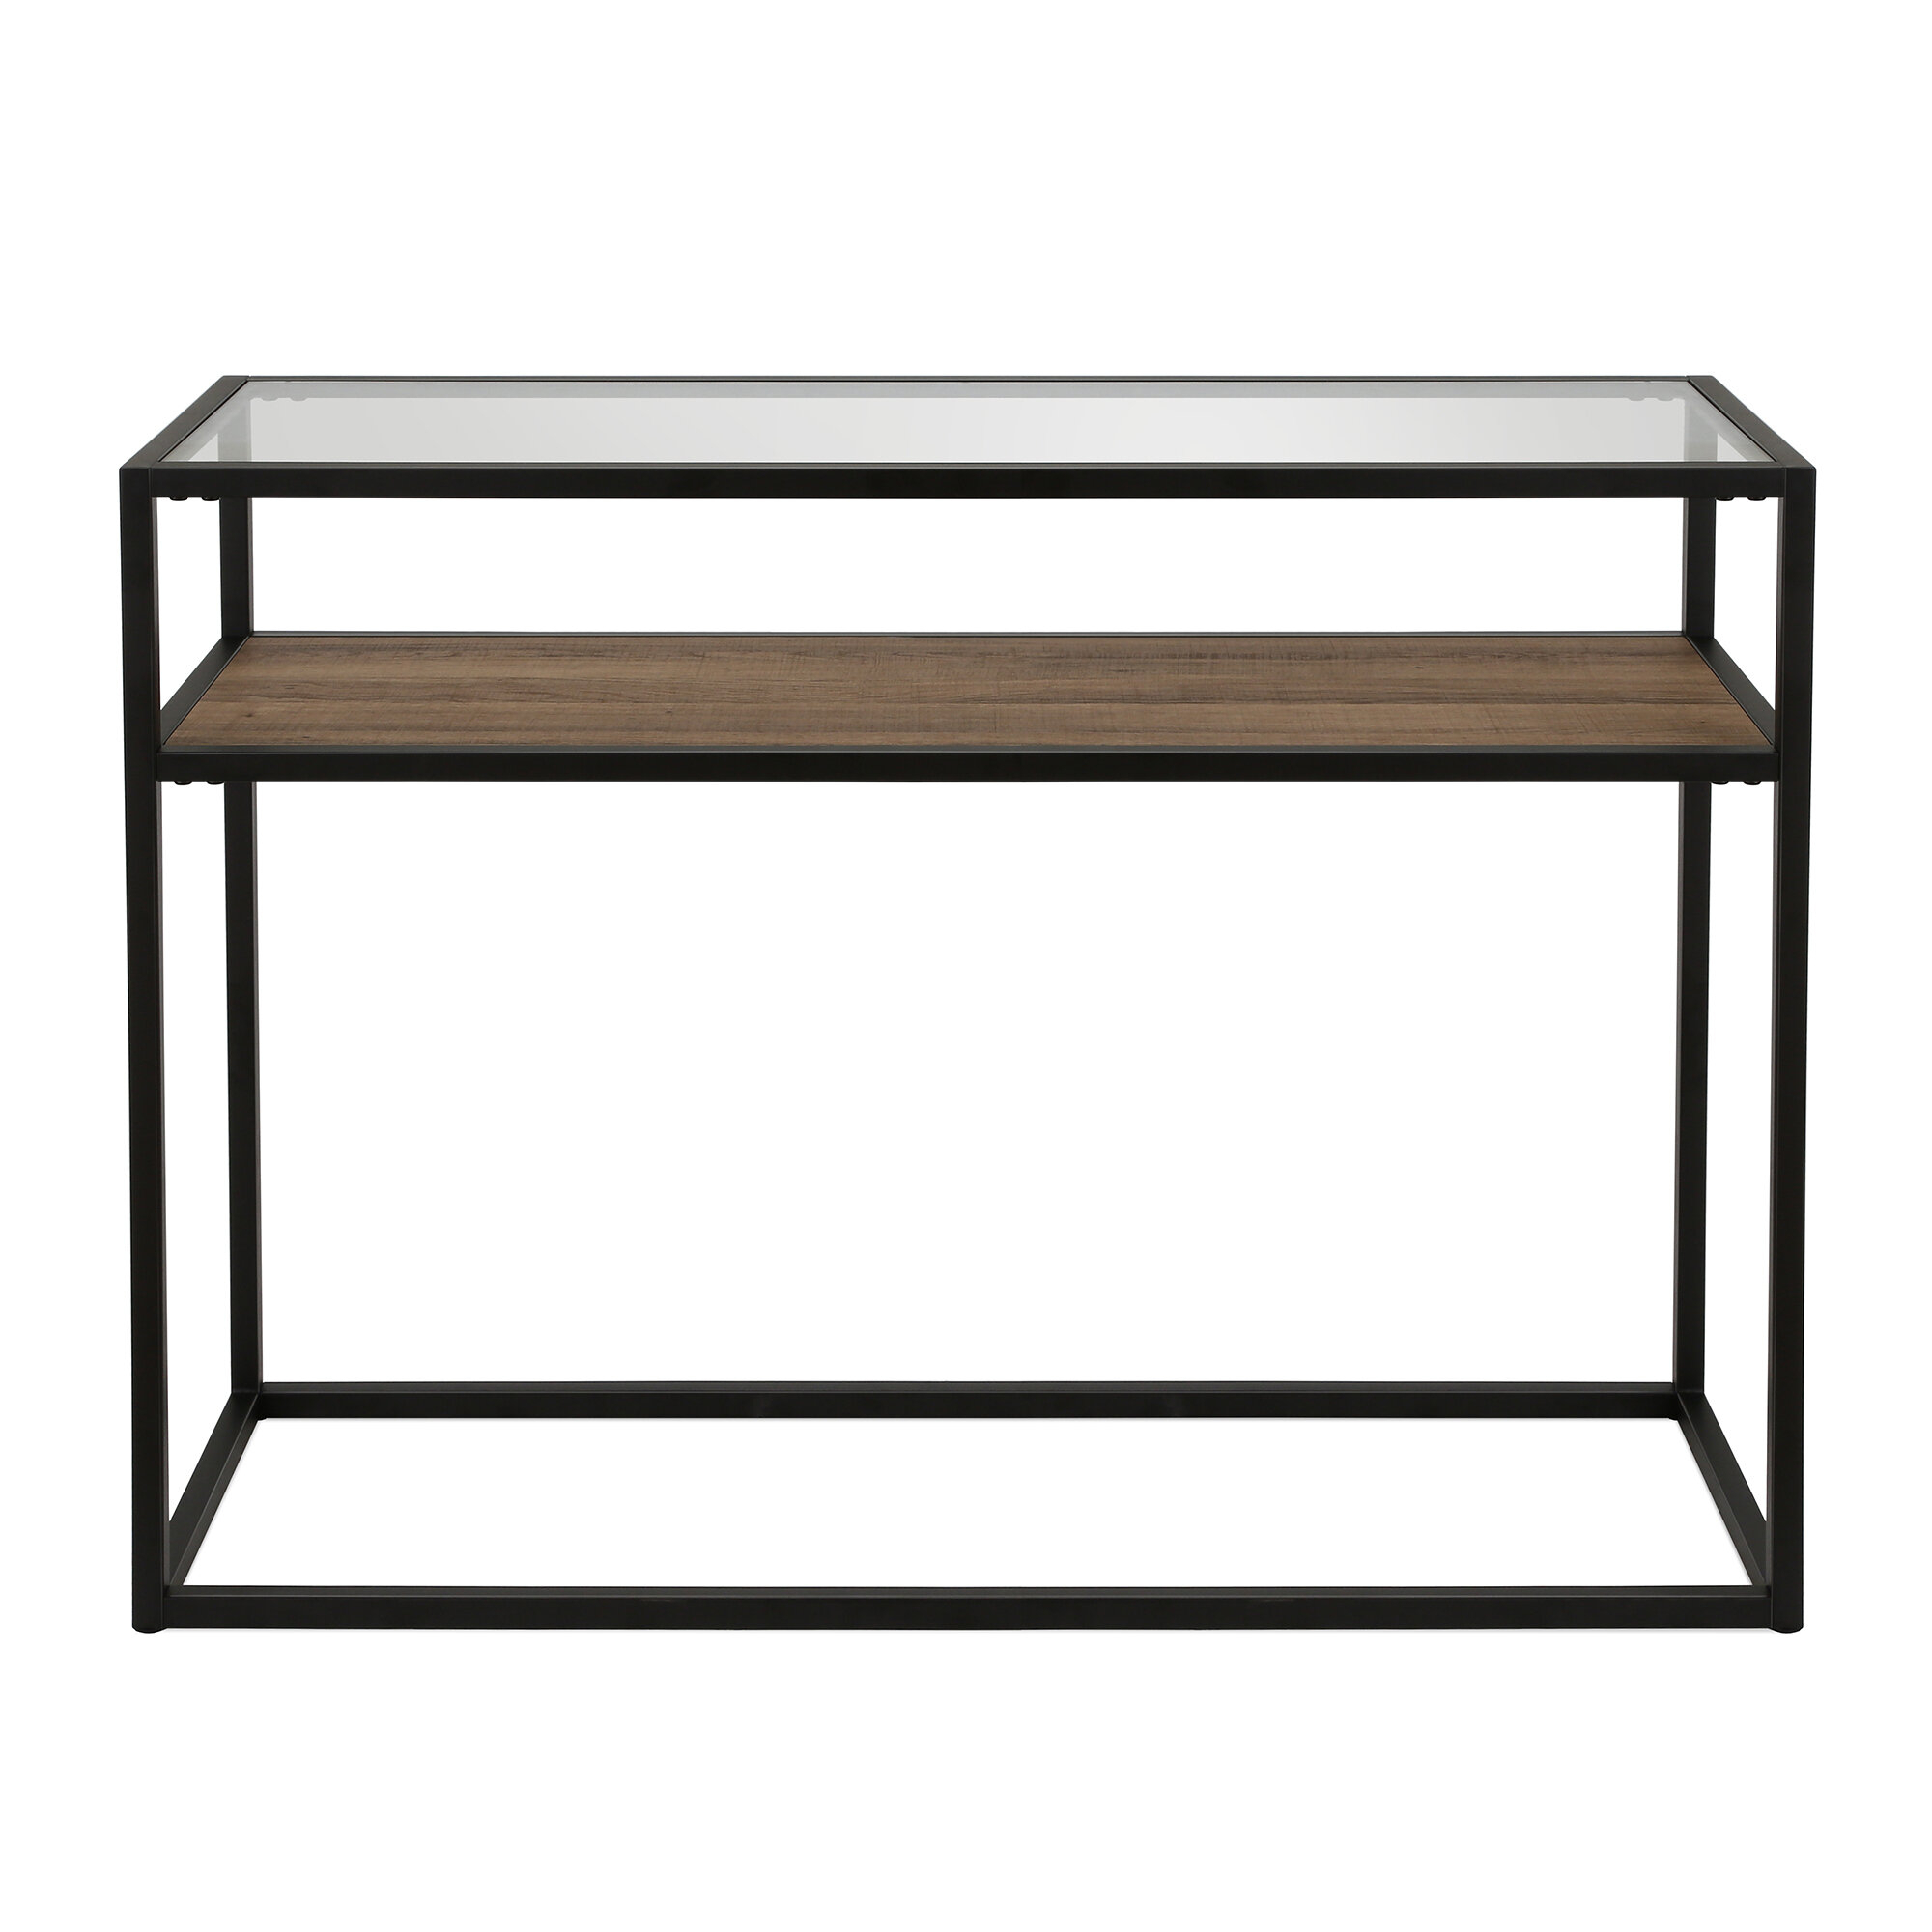 Modern Glass Console Tables | Allmodern In Roman Metal Top Console Tables (View 24 of 30)